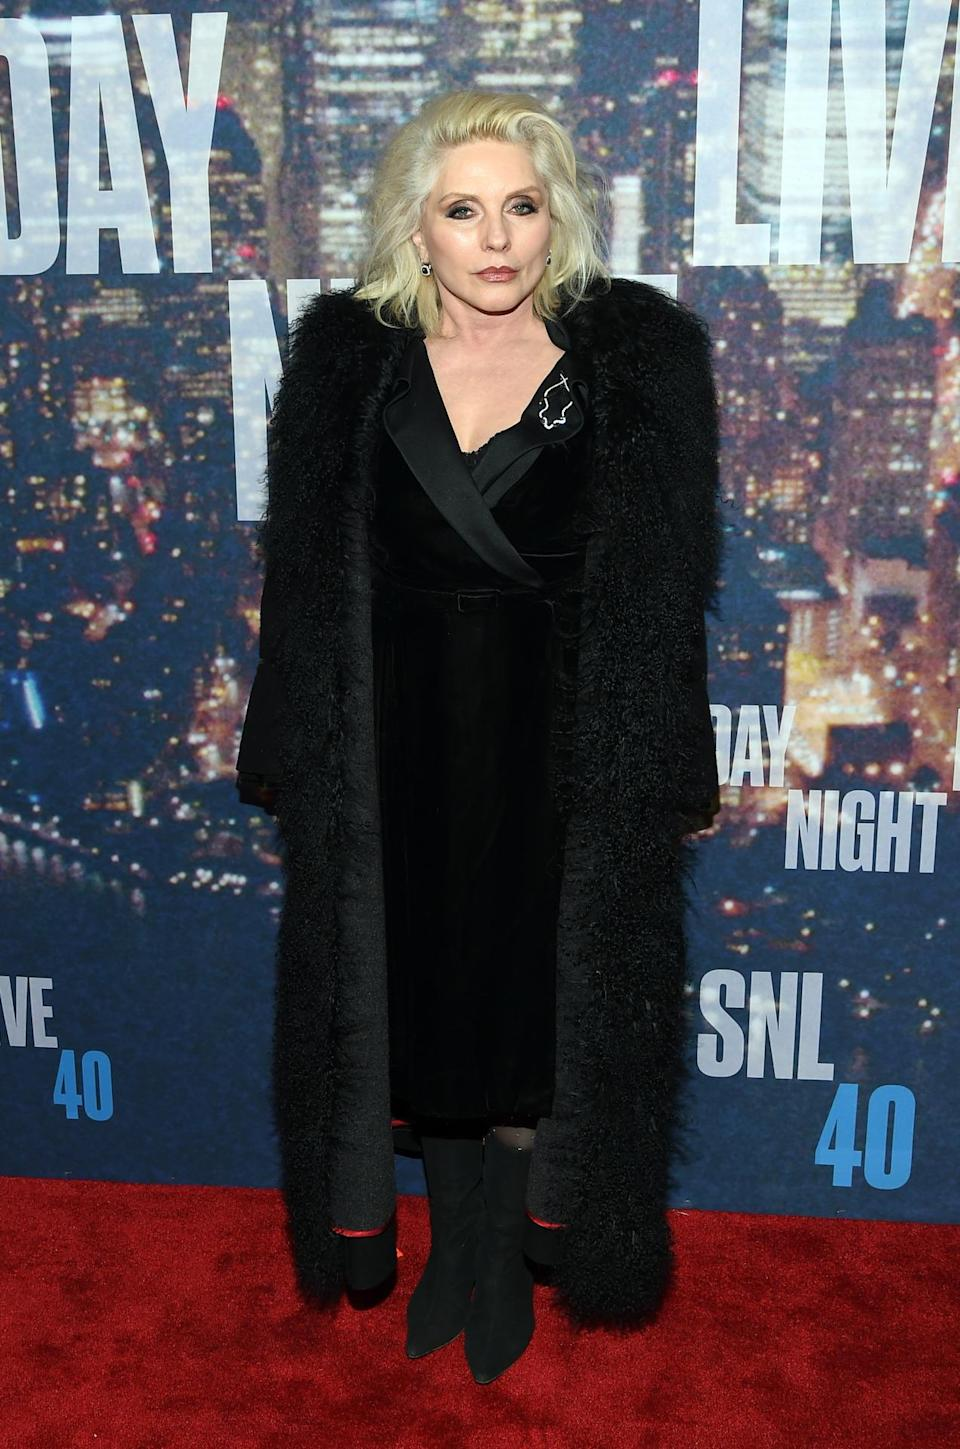 Blondie brings it like only an icon can in a long black fur coat, velvet dress, and booties.